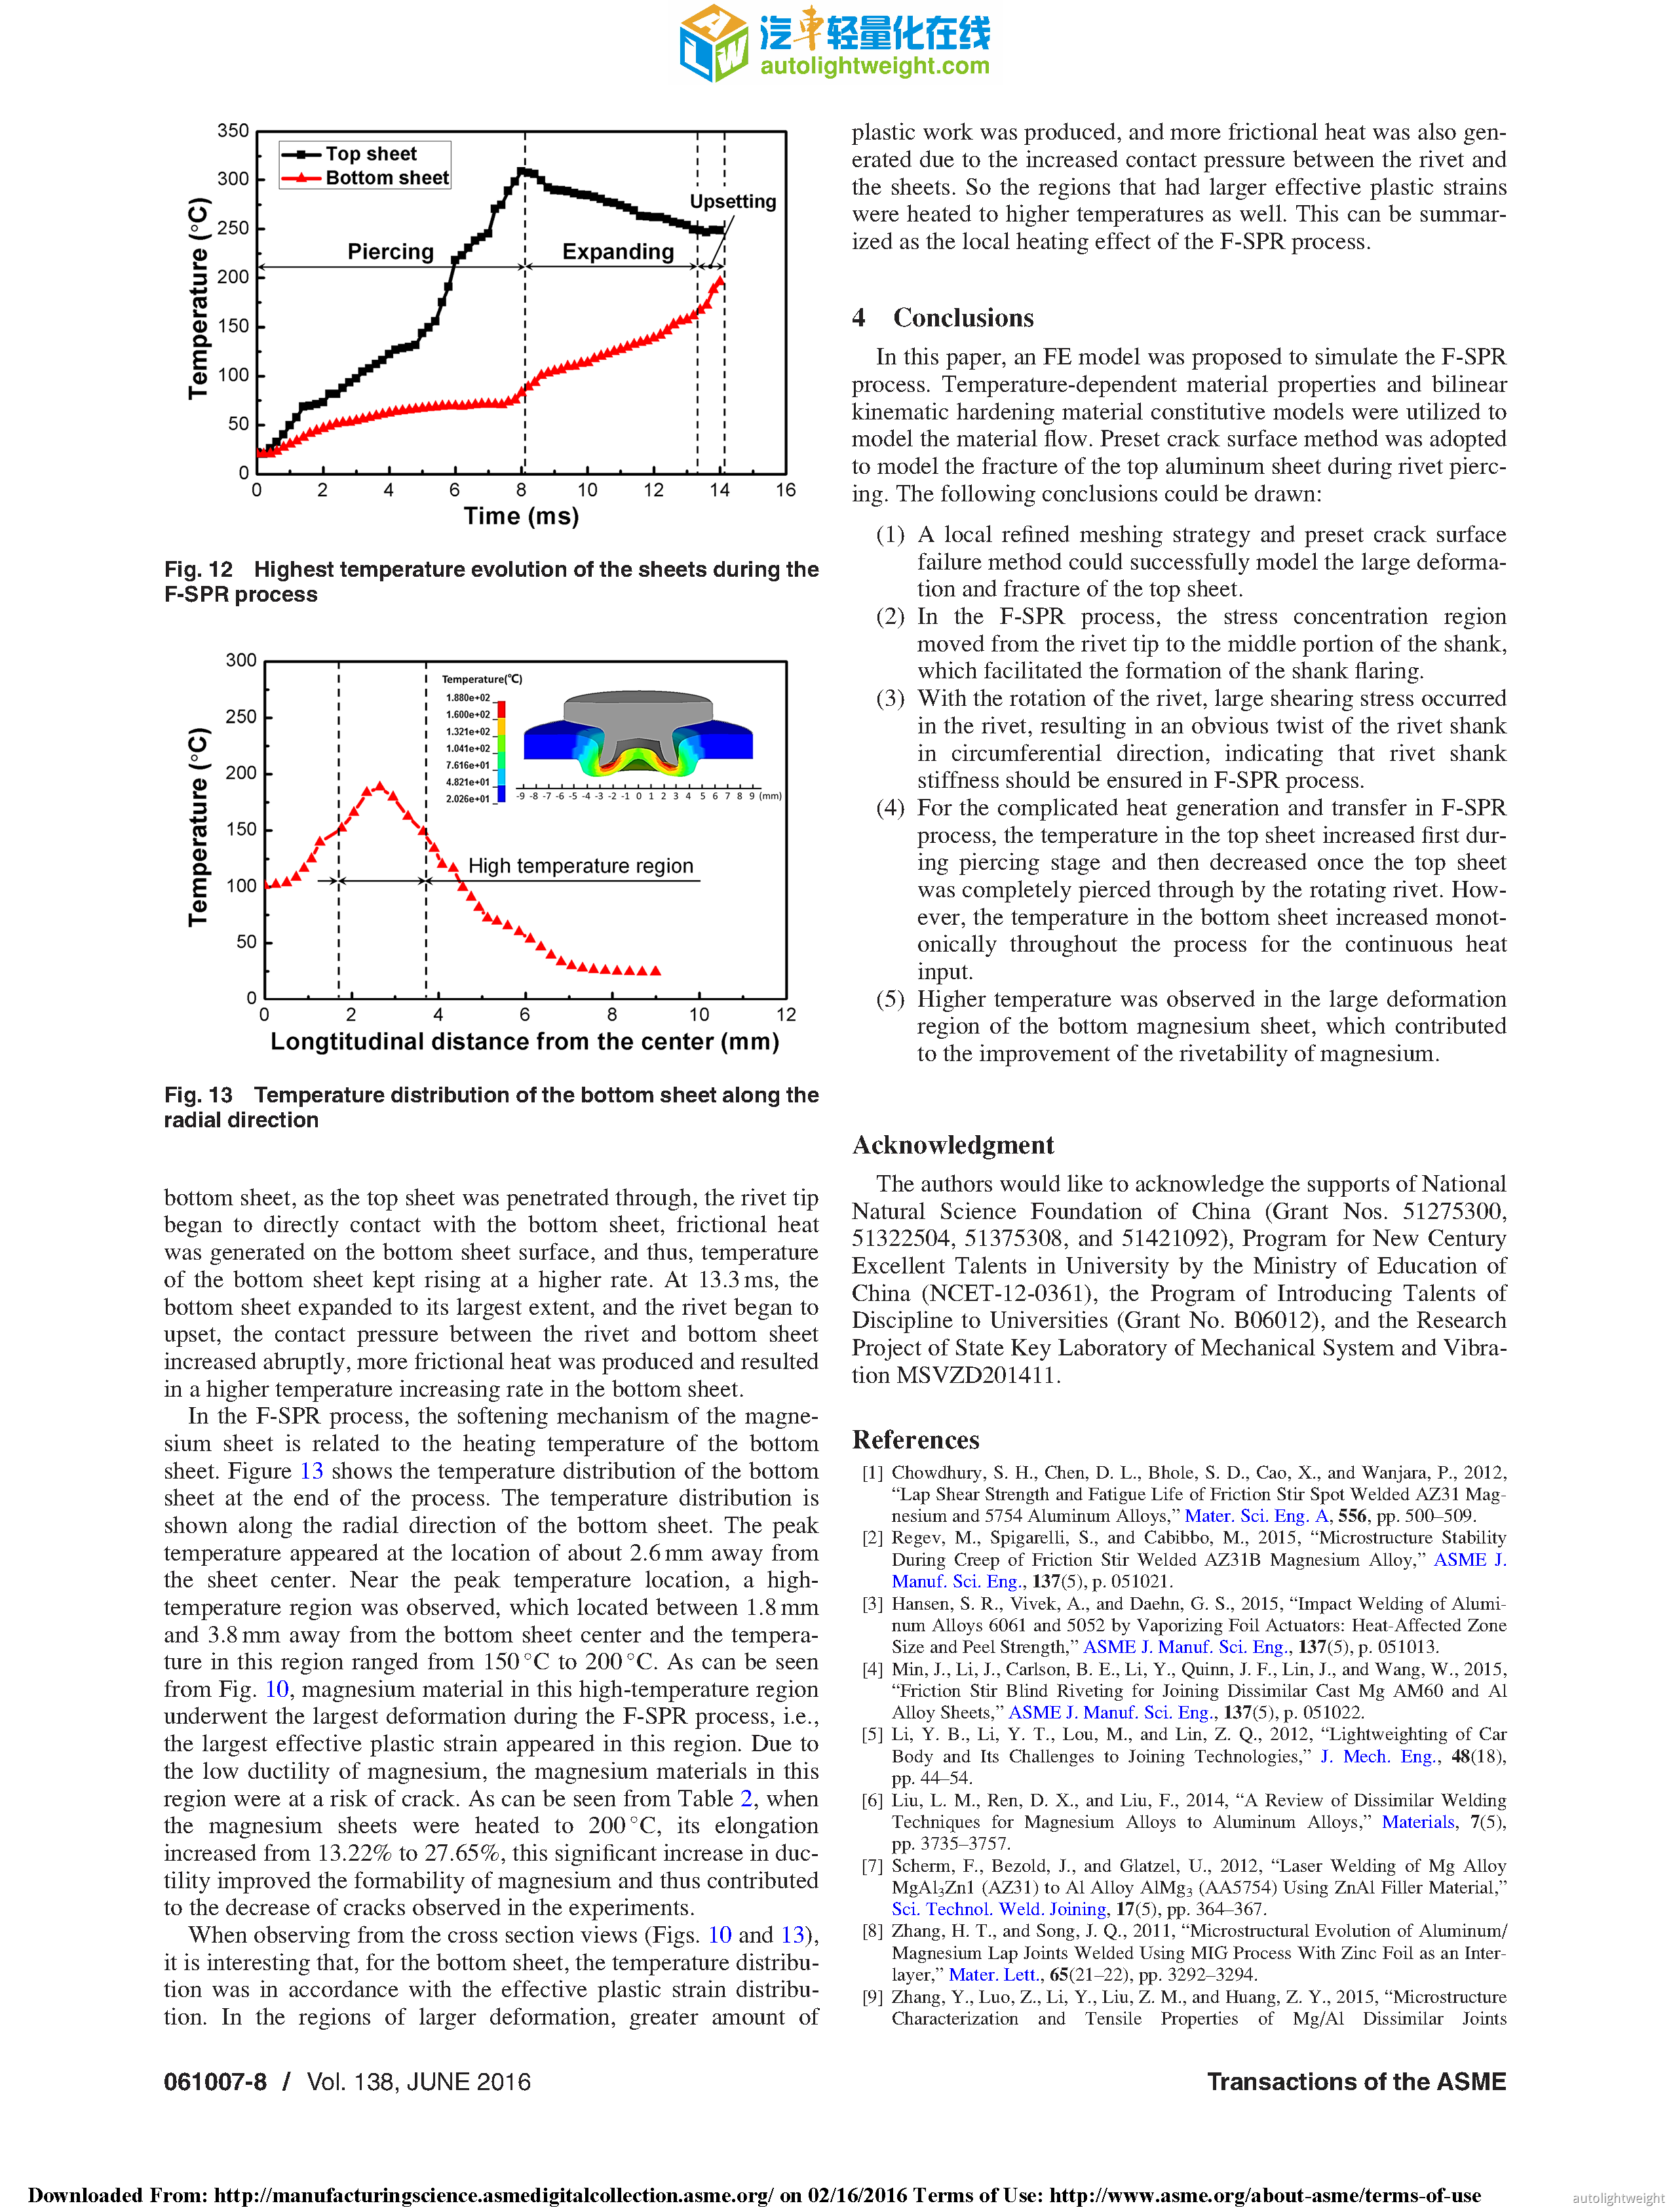 Modeling of Friction Self-Piercing Riveting of Aluminum to Magnesium_页面_8.png